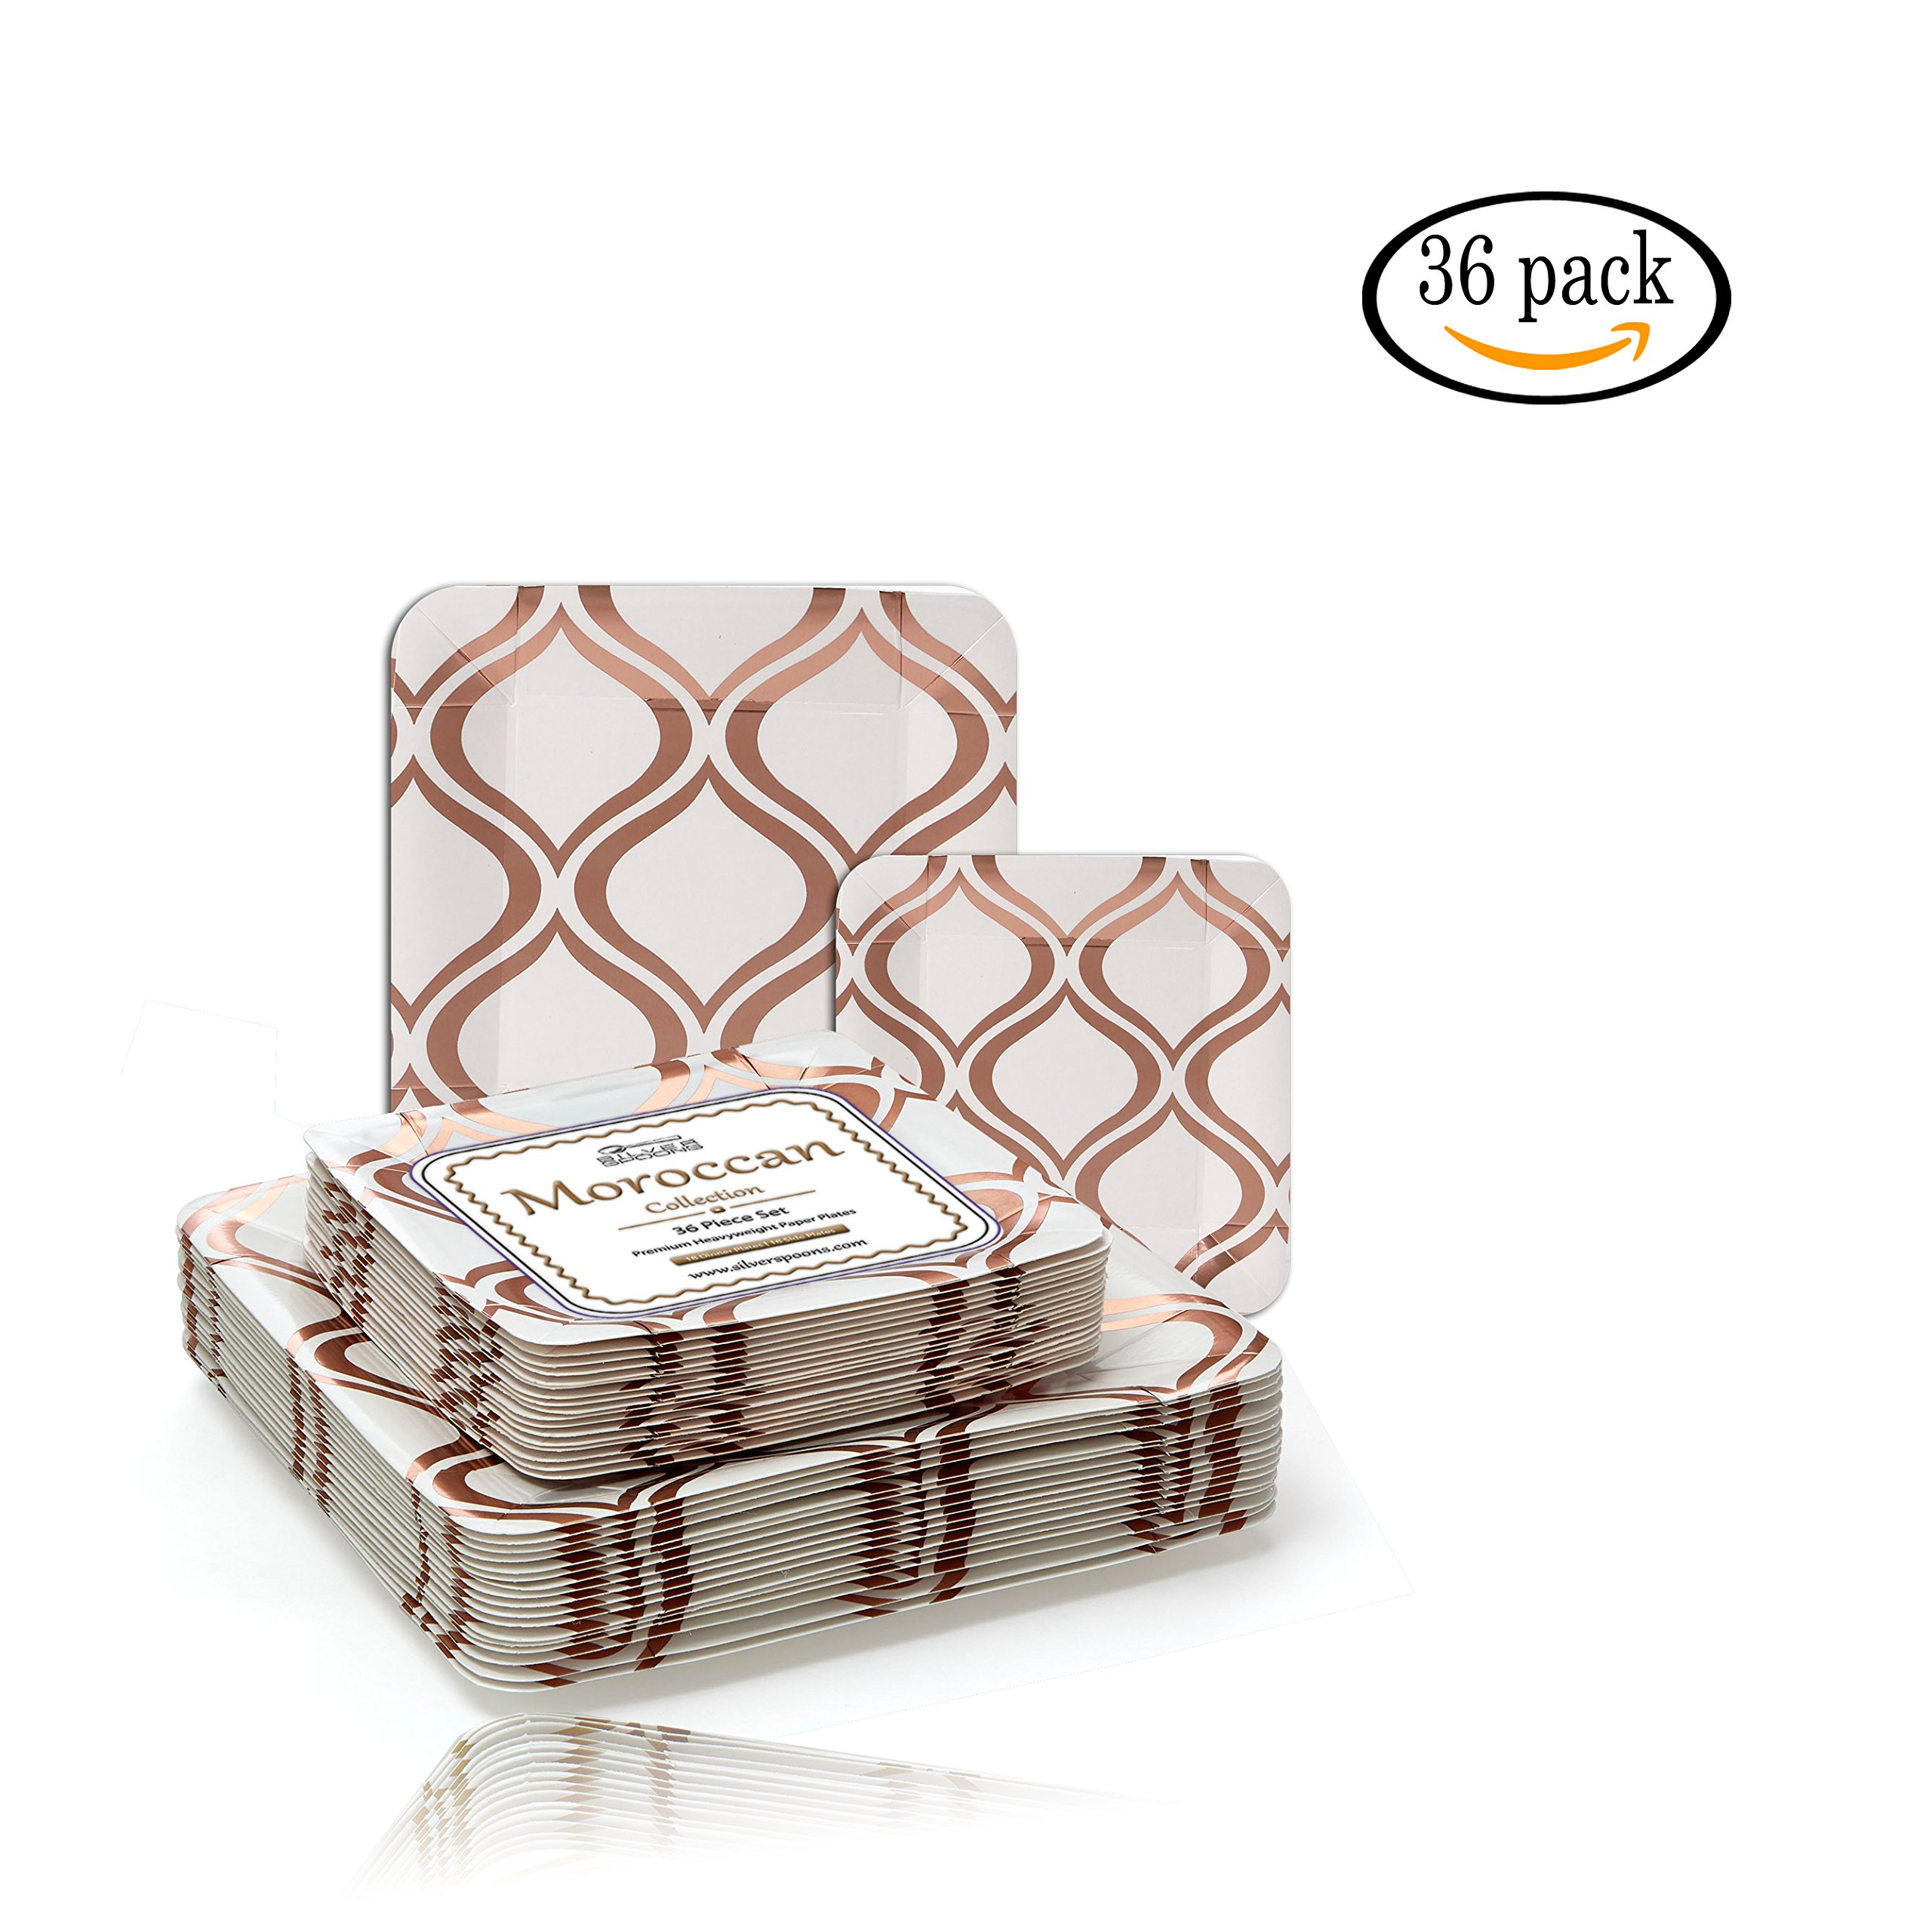 PARTY DISPOSABLE 36 PC DINNERWARE SET | 18 Dinner Plates | 18 Salad or Dessert Plates | Heavy Duty Paper Plates | for Upscale Wedding and Dining | Square Metallic Rose - Moroccan Collection